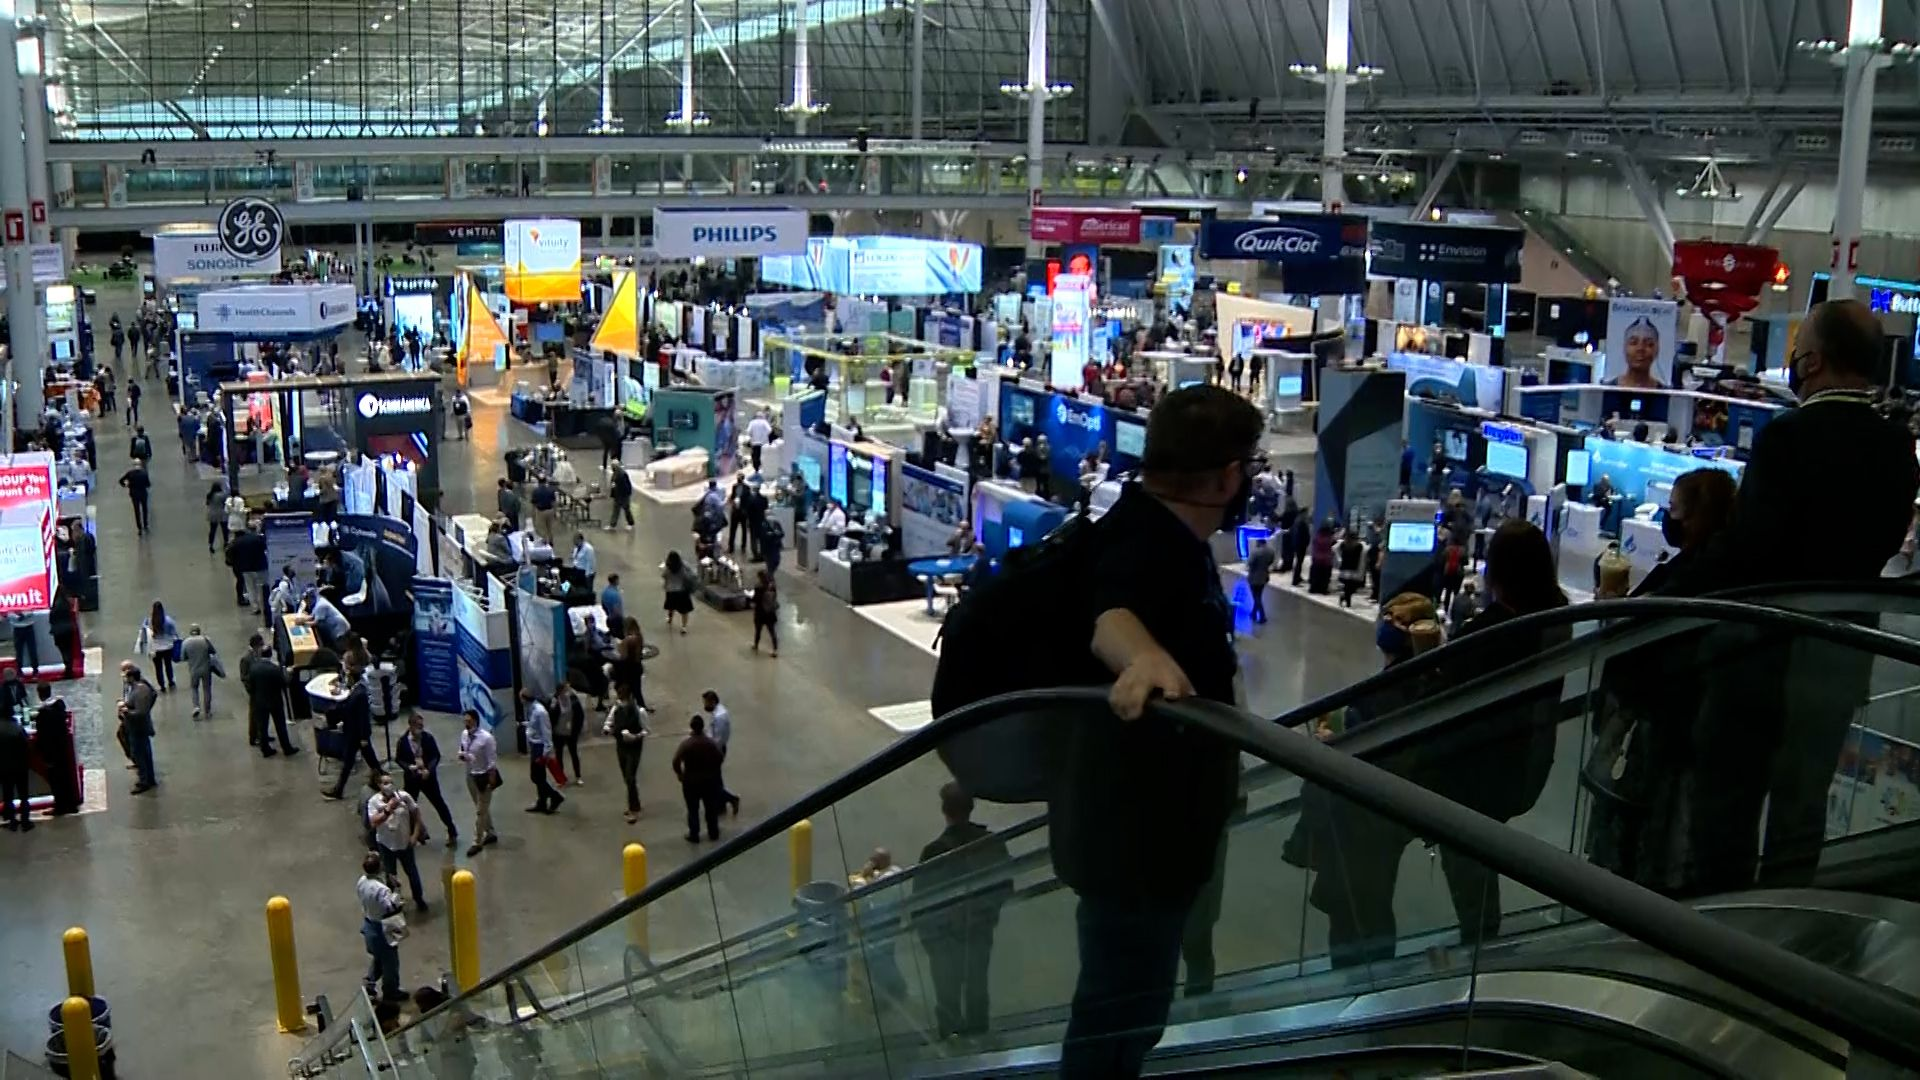 Thousands attend medical conference at Boston Convention & Exhibition Center